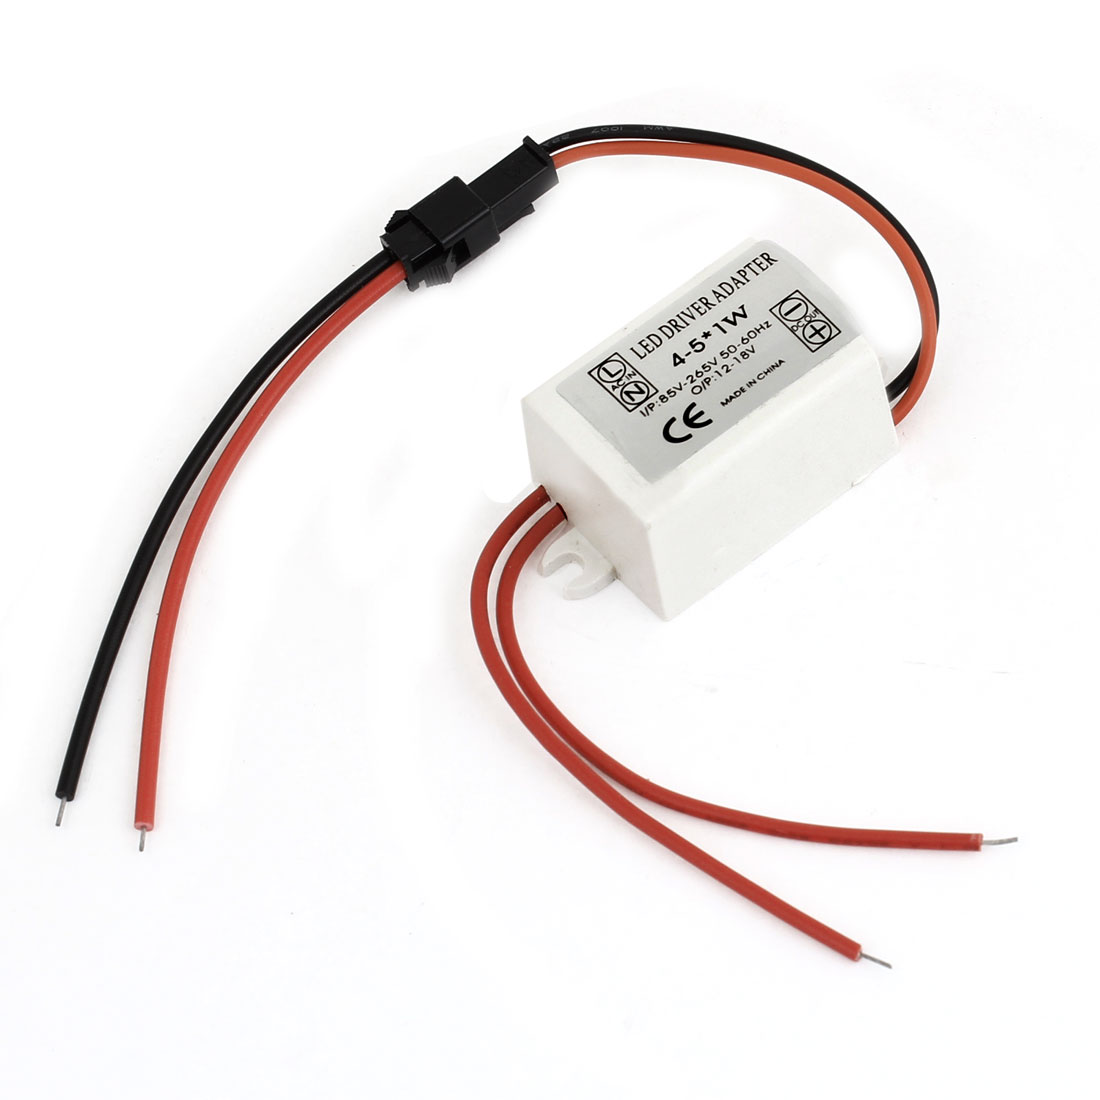 AC85-265V Driver Power Supply Adapter White for 4-5 1W LED Flexible Strip Light